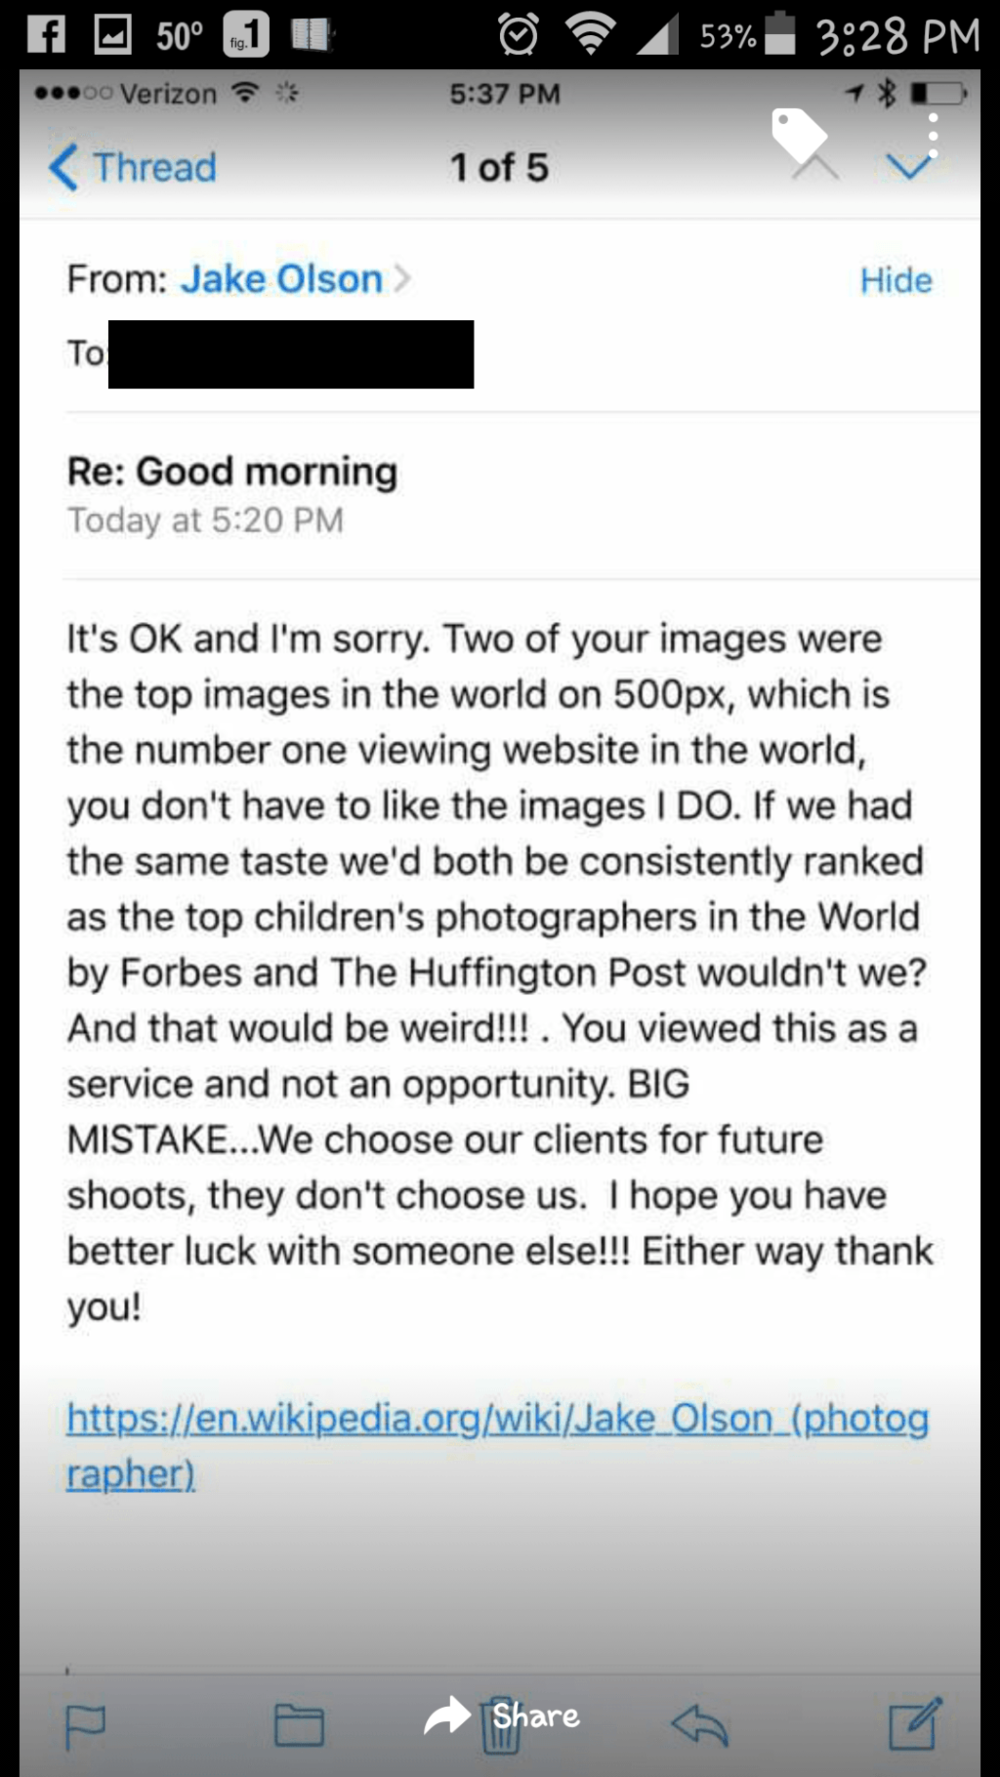 A complaint email from a client and Jake's super professional response.